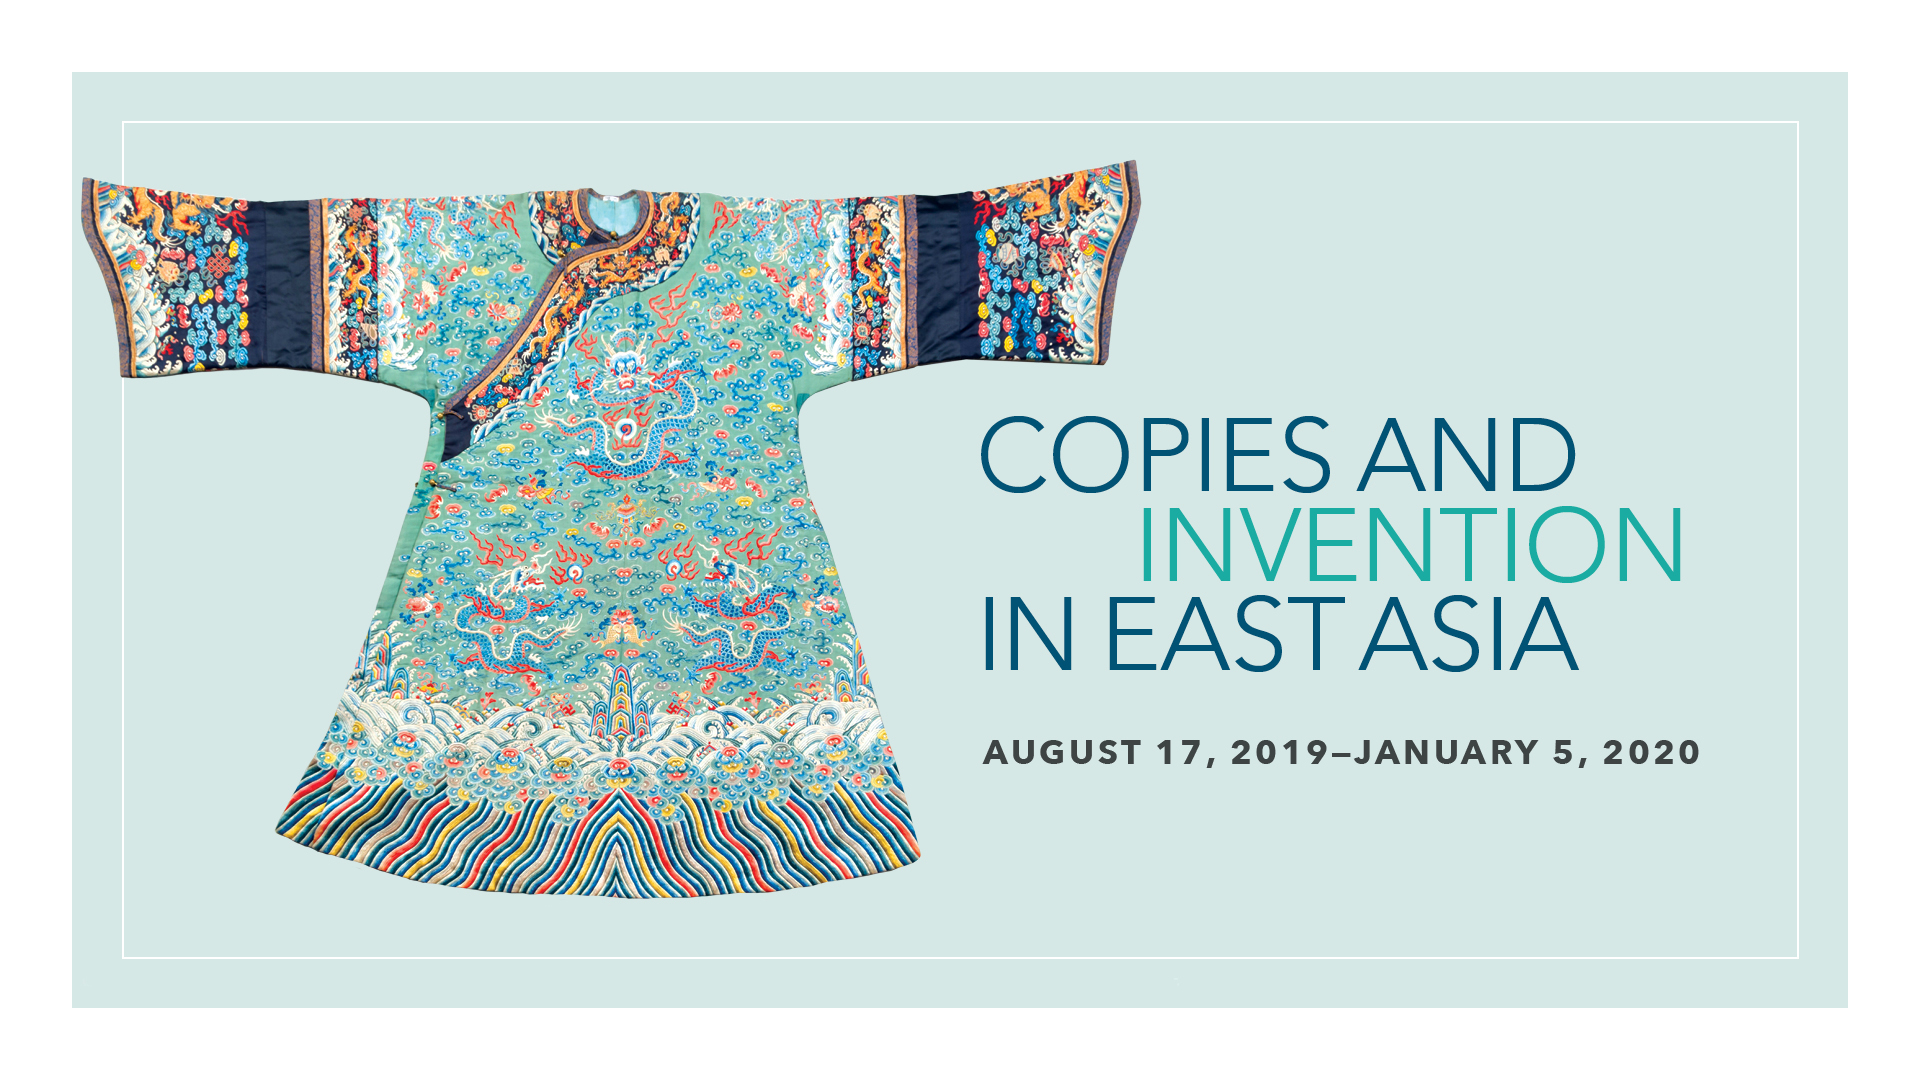 Copies and Invention in East Asia: August 17, 2019 through January 5, 2020